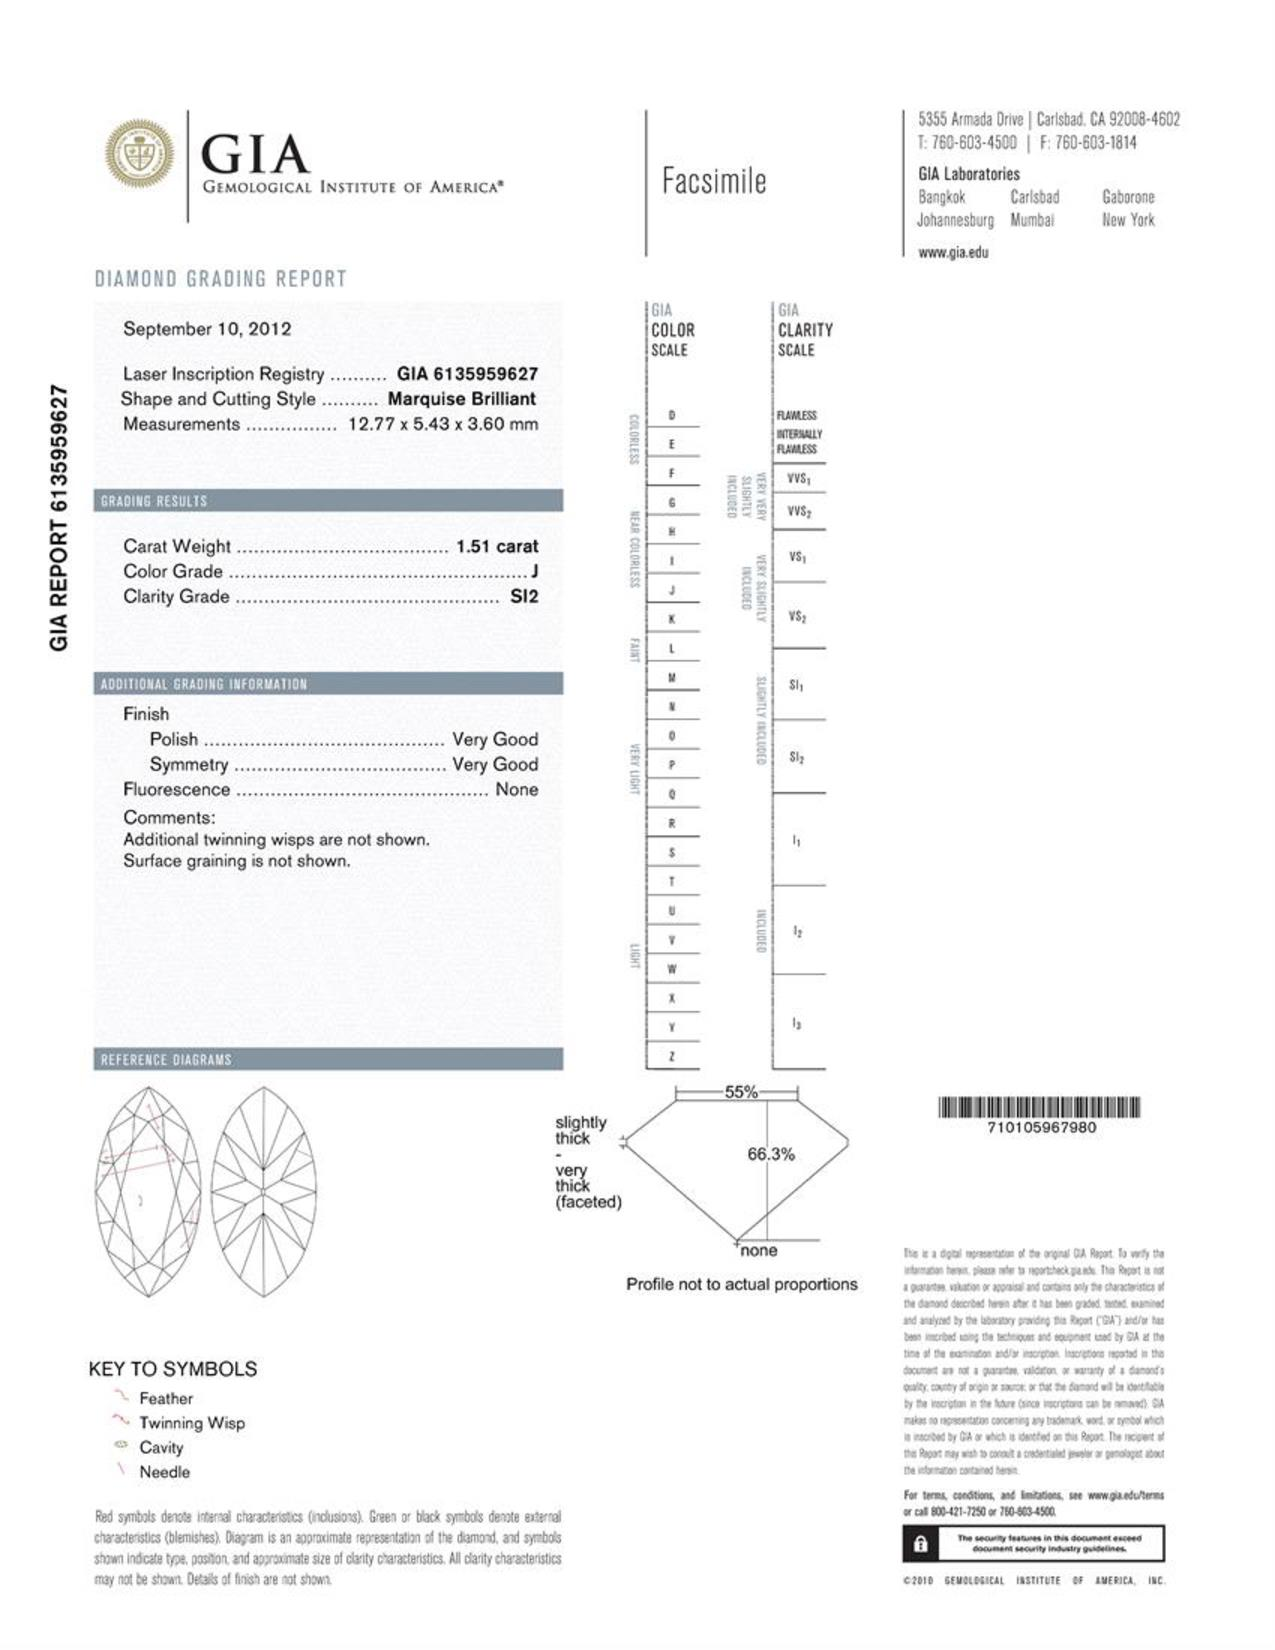 This is a 1.51 carat marquise shape, J color, SI2 clarity natural diamond accompanied by a GIA grading report.